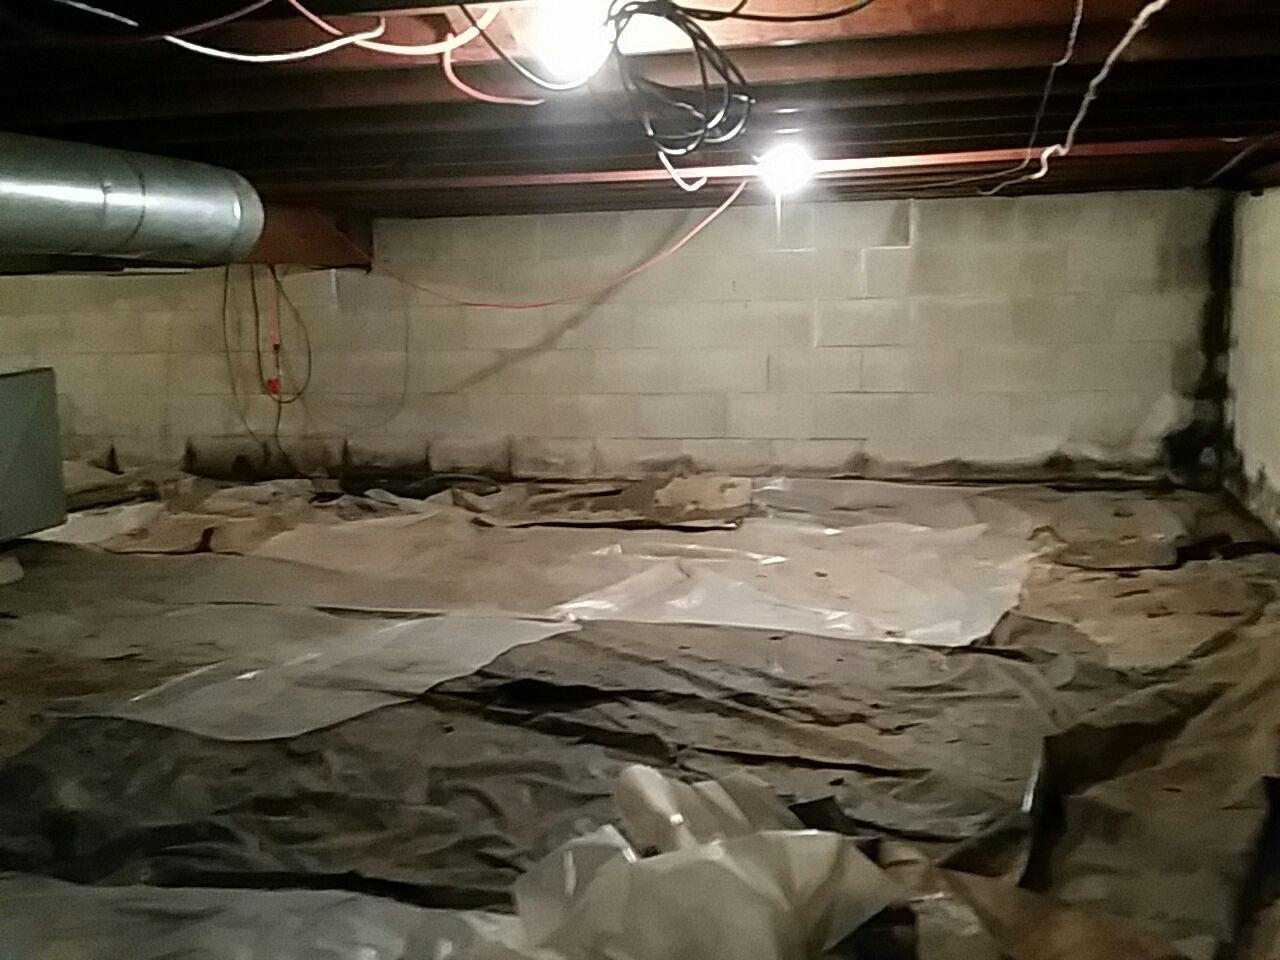 Before the crawlspace was damp and beginning to grow mold.